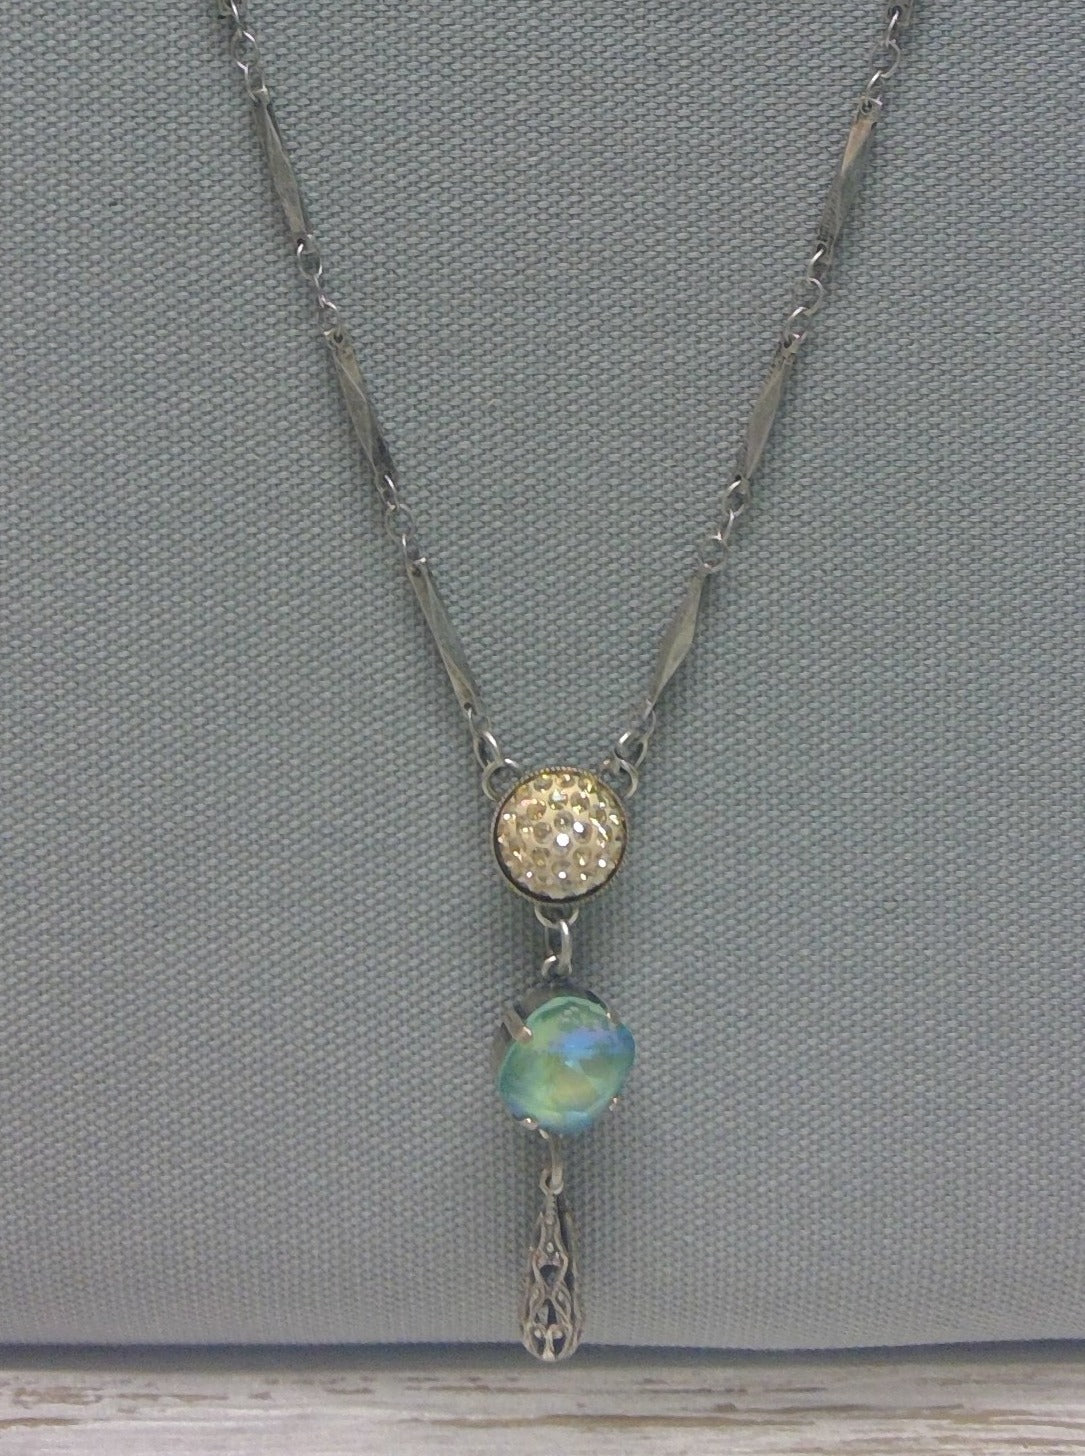 Garden Gate Necklace by Rachel Marie Designs